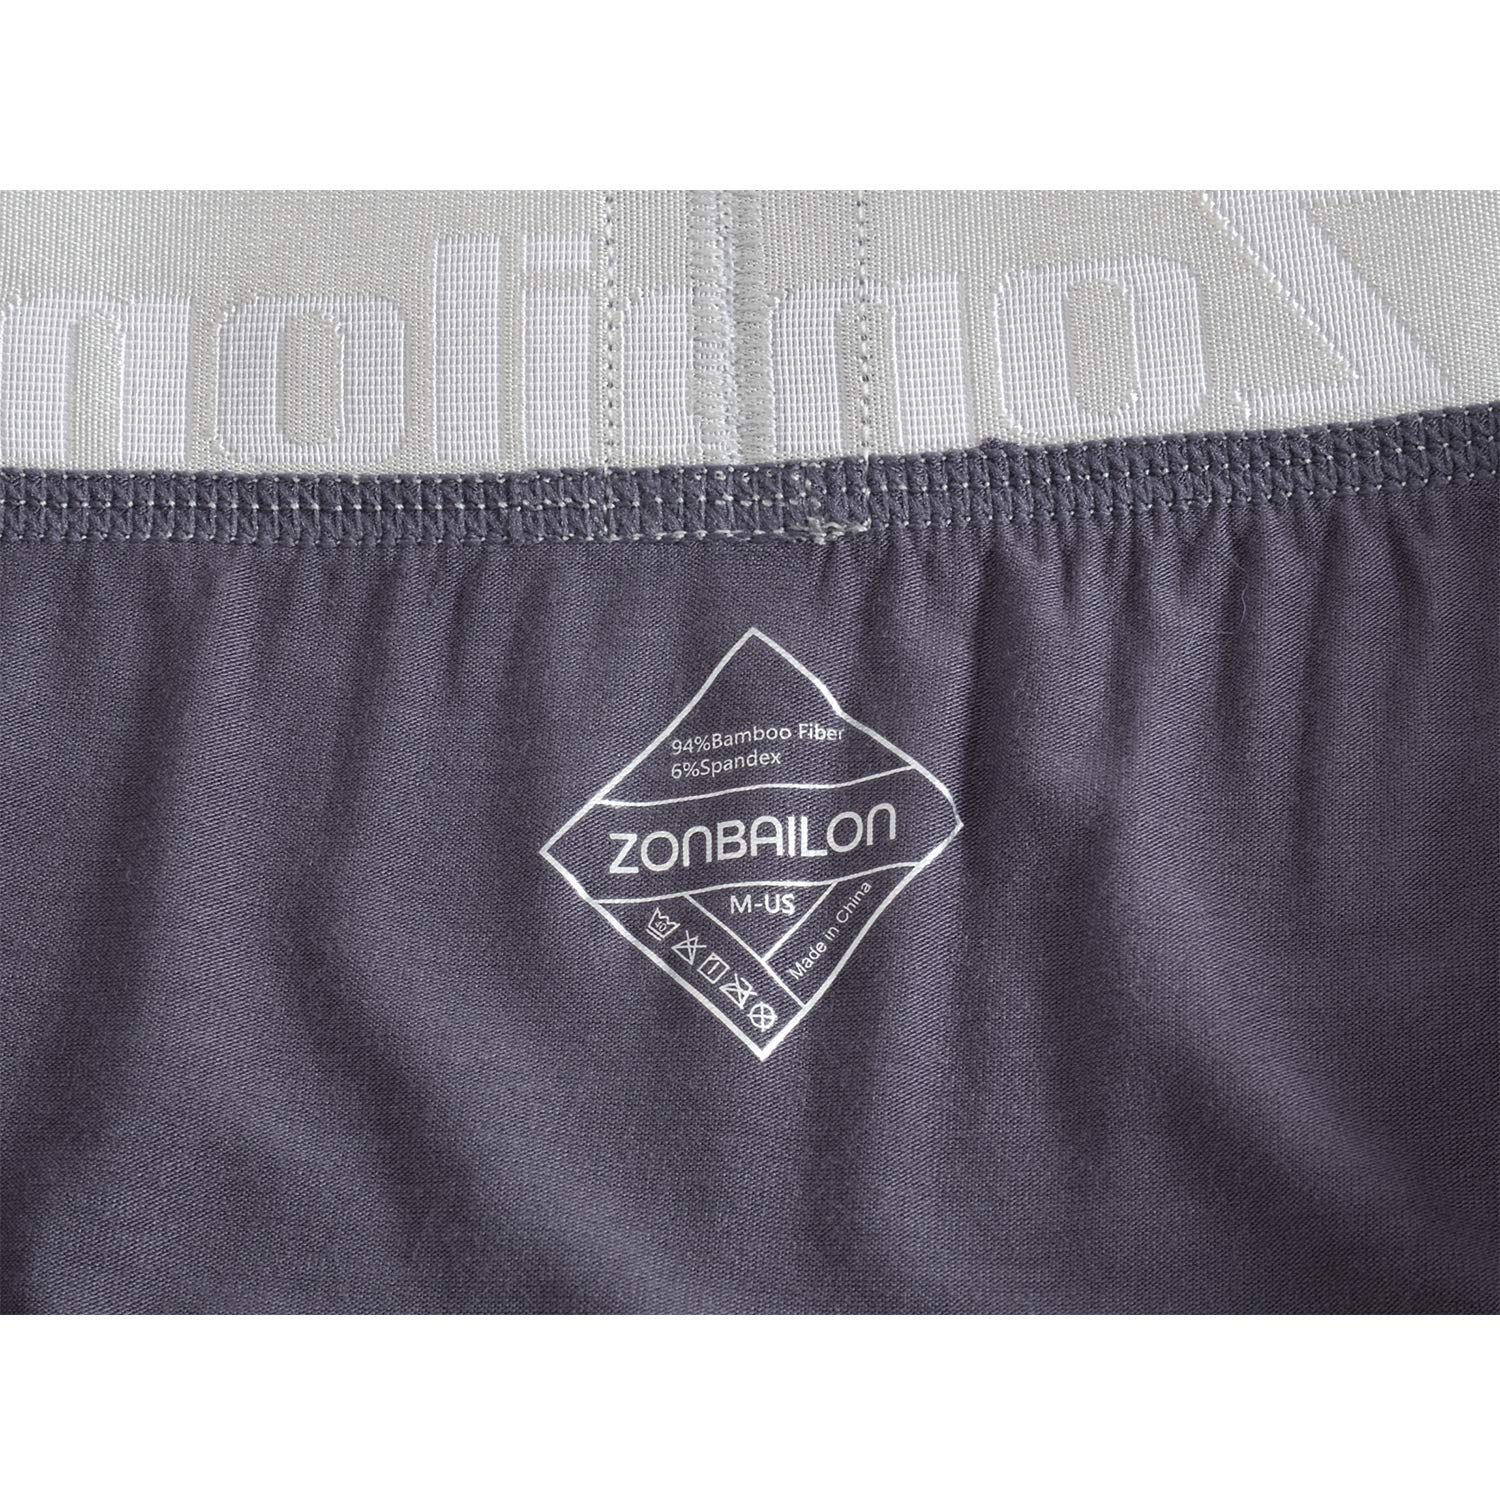 Mens Underwear Bamboo Boxers Breathable Running Underpants Boxer Briefs for Men Pack